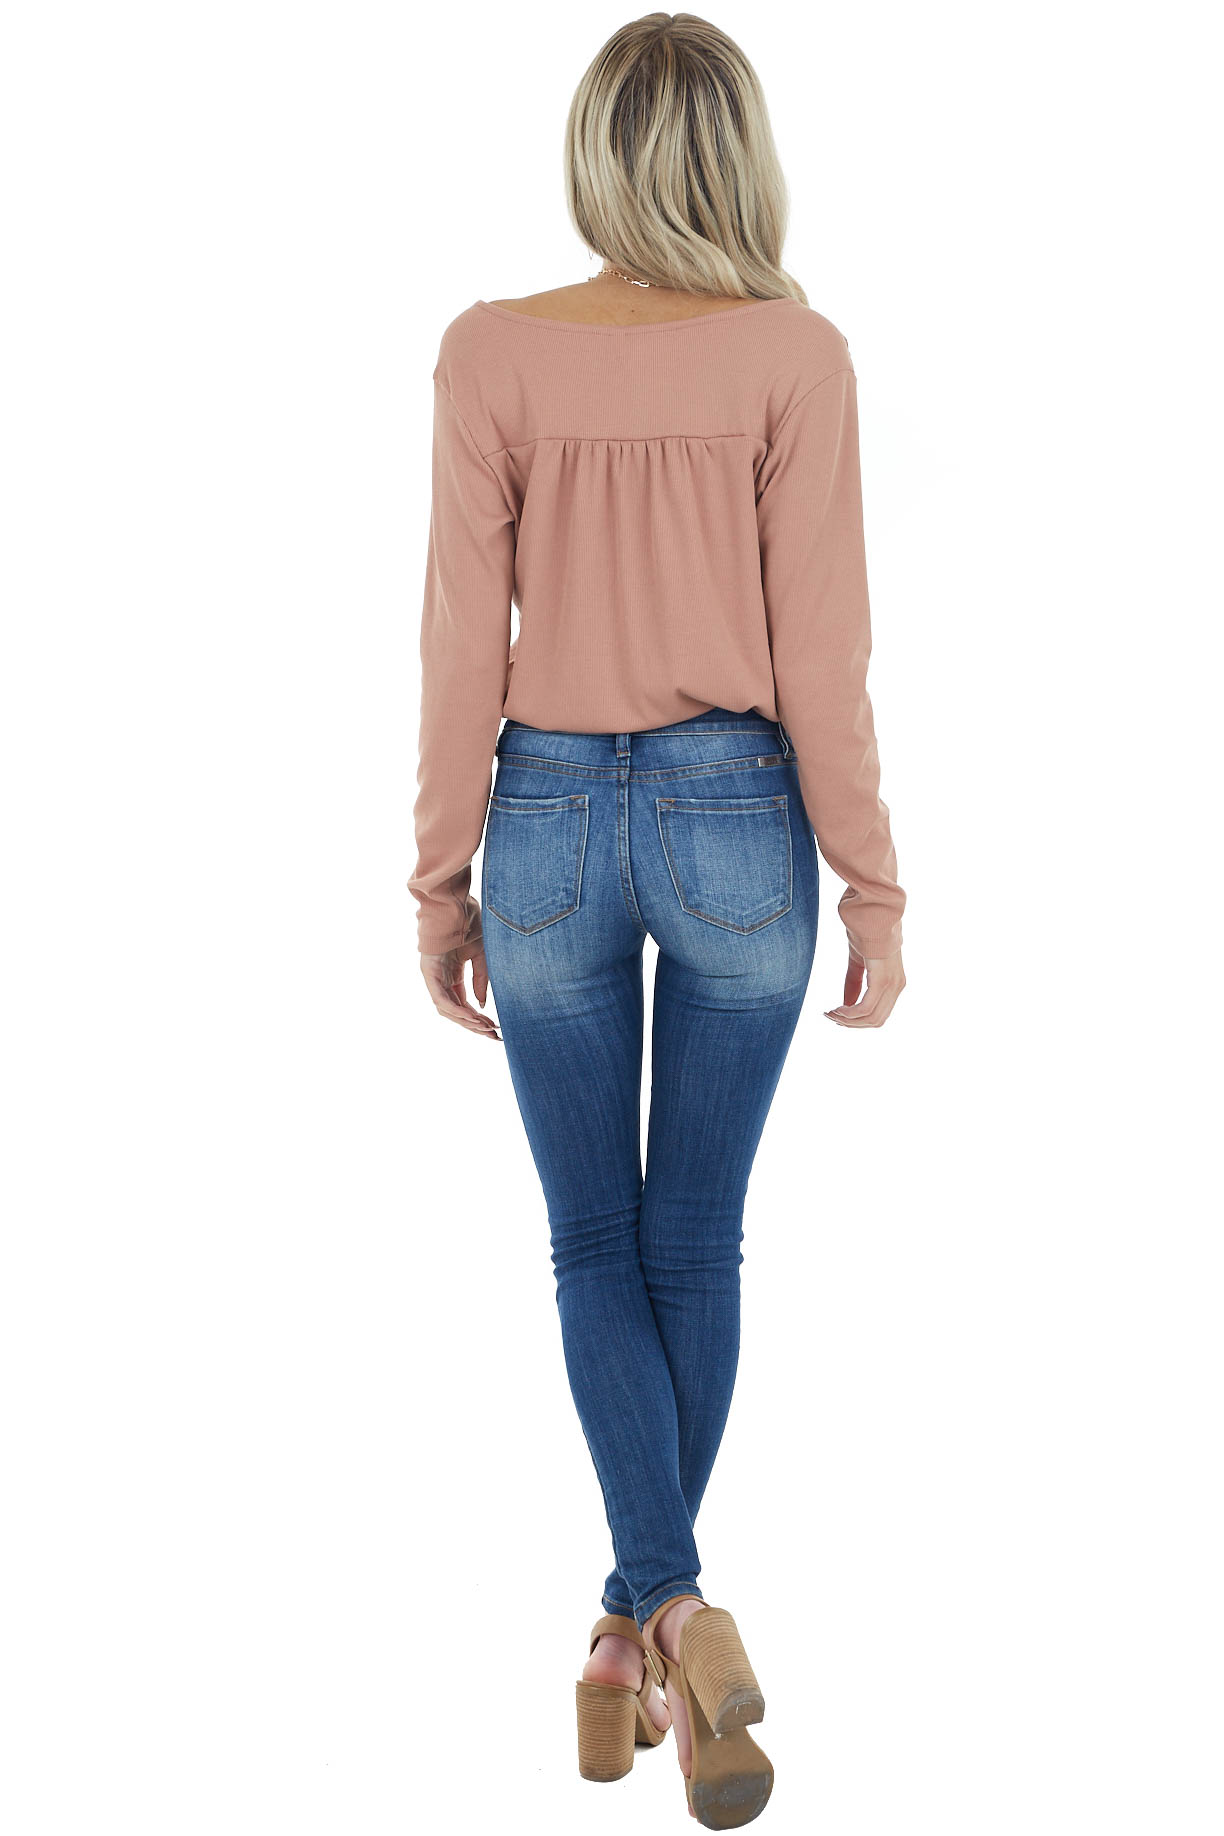 Dusty Peach Ribbed Knit Surplice Bodysuit with Long Sleeves